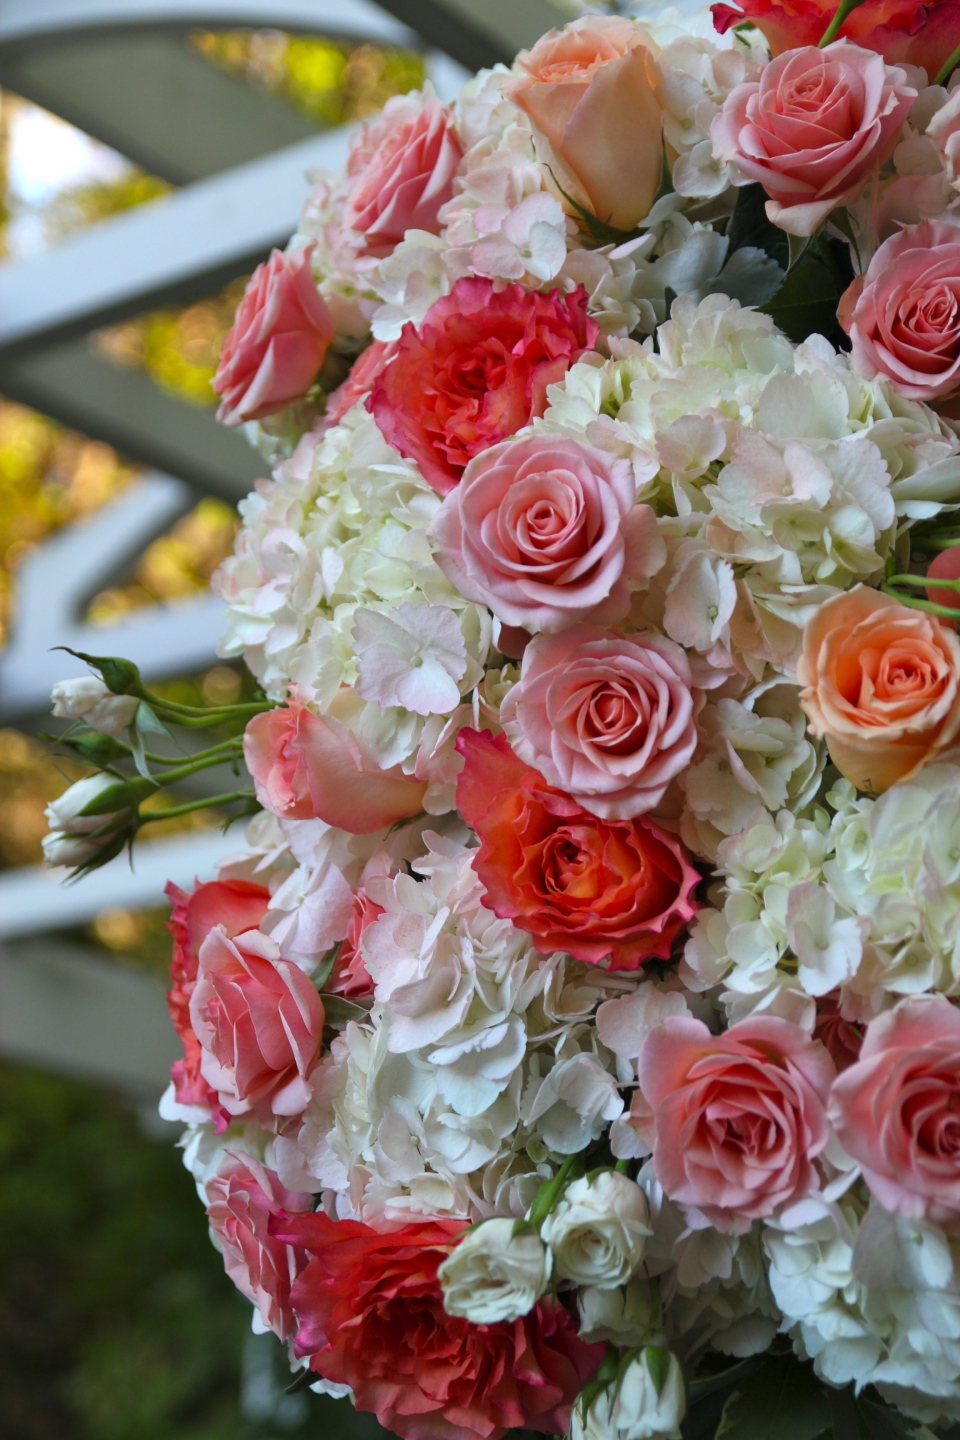 Trellis arrangements were loaded with hydrangea, roses and spray roses